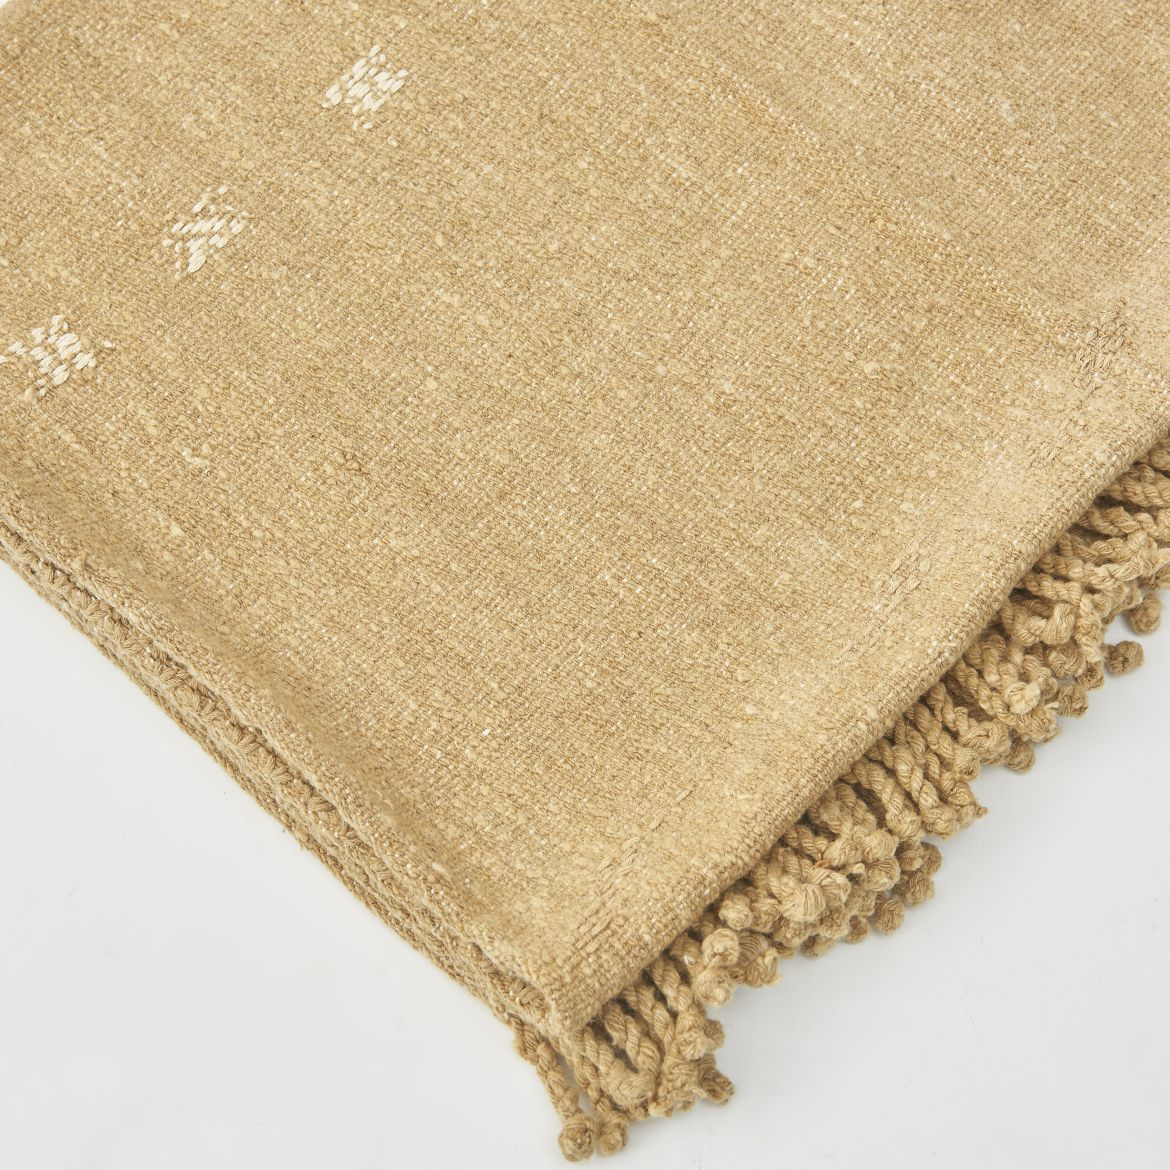 Hand Woven Guatemalan Cotton Throw